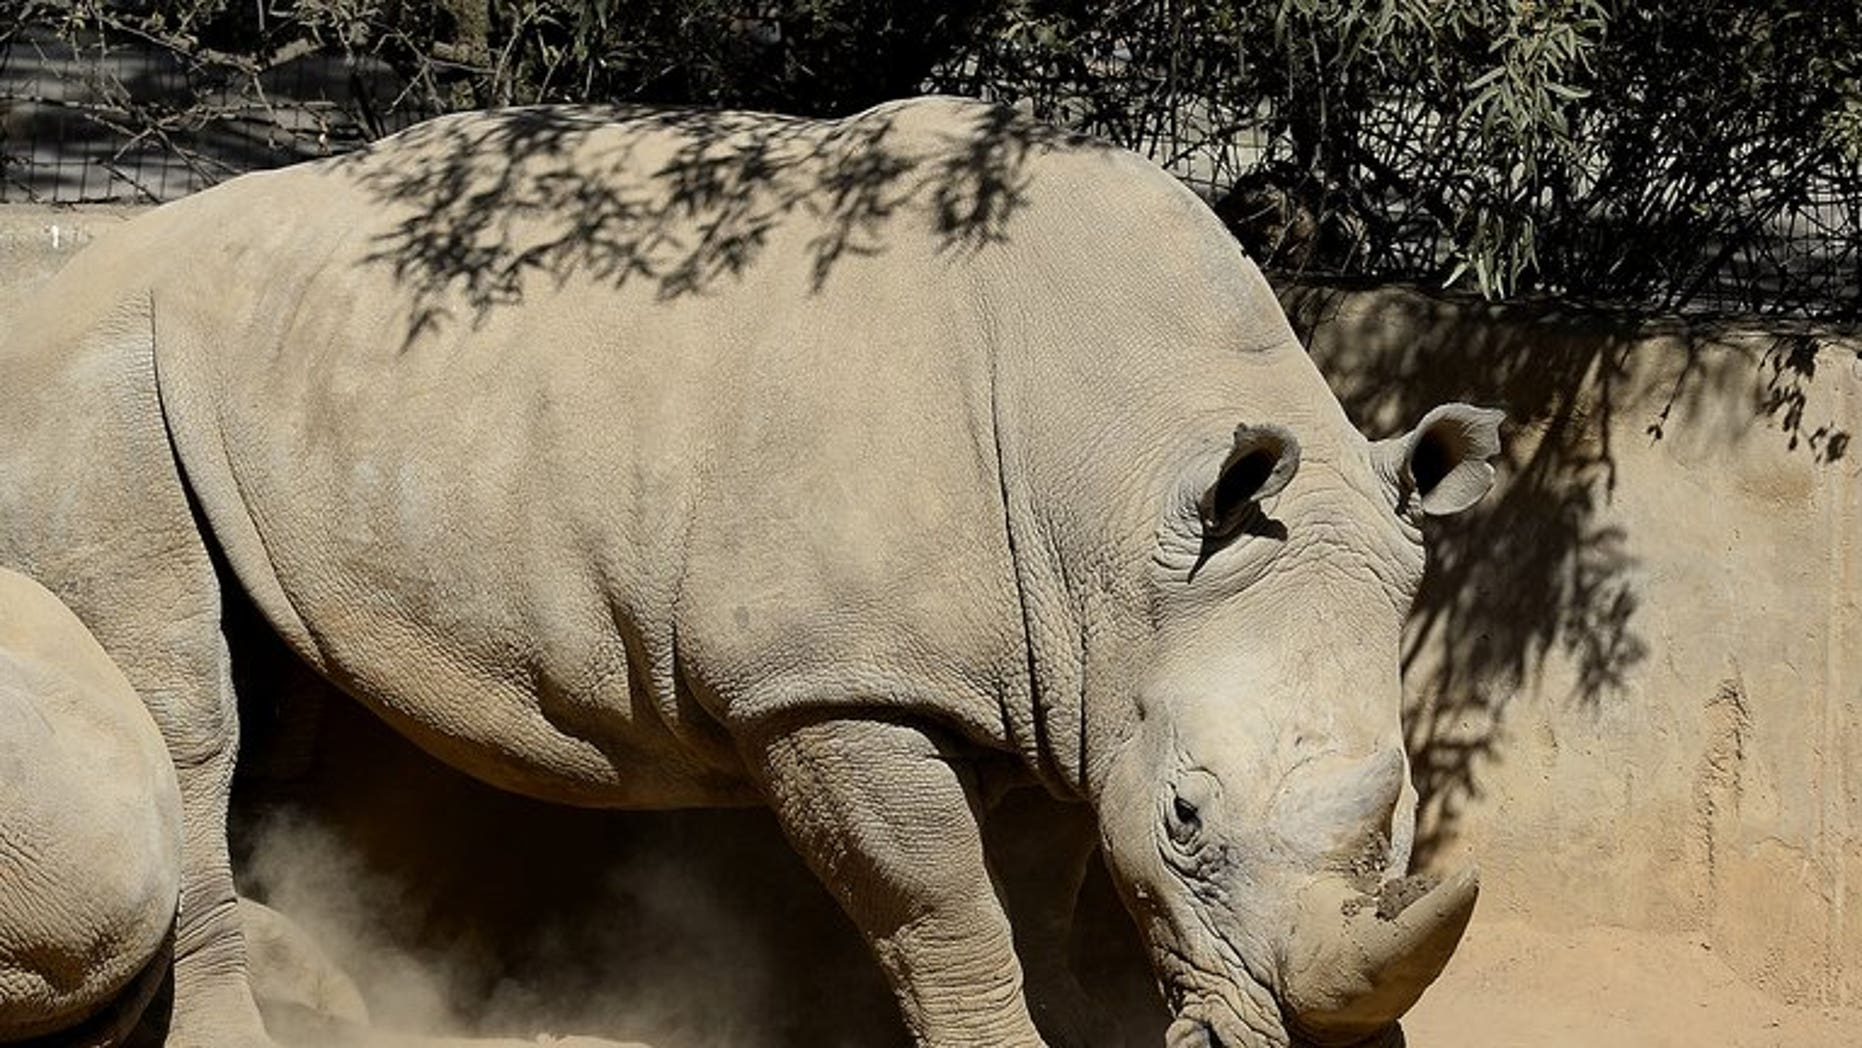 This picture taken on July 25, 2013 shows a white rhino at the Johannesburg Zoo. Poachers have killed more than 600 rhinos in South Africa so far this year, figures showed Thursday, with losses close to the total number of animals slaughtered in 2012.